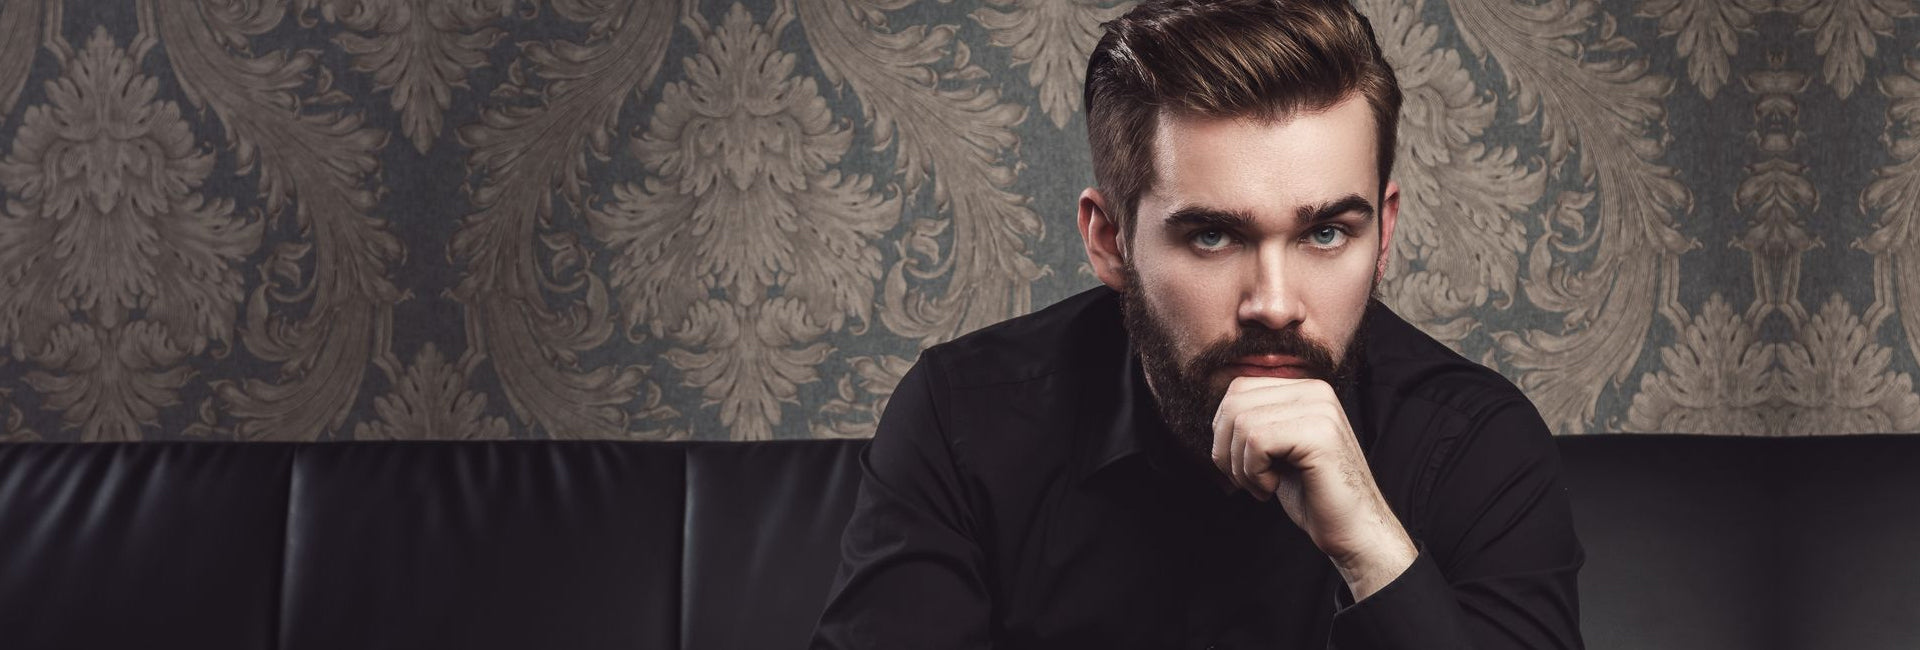 97% OF WOMEN PREFER MEN WITH BEARDS...THE OTHER 3% DO TOO.